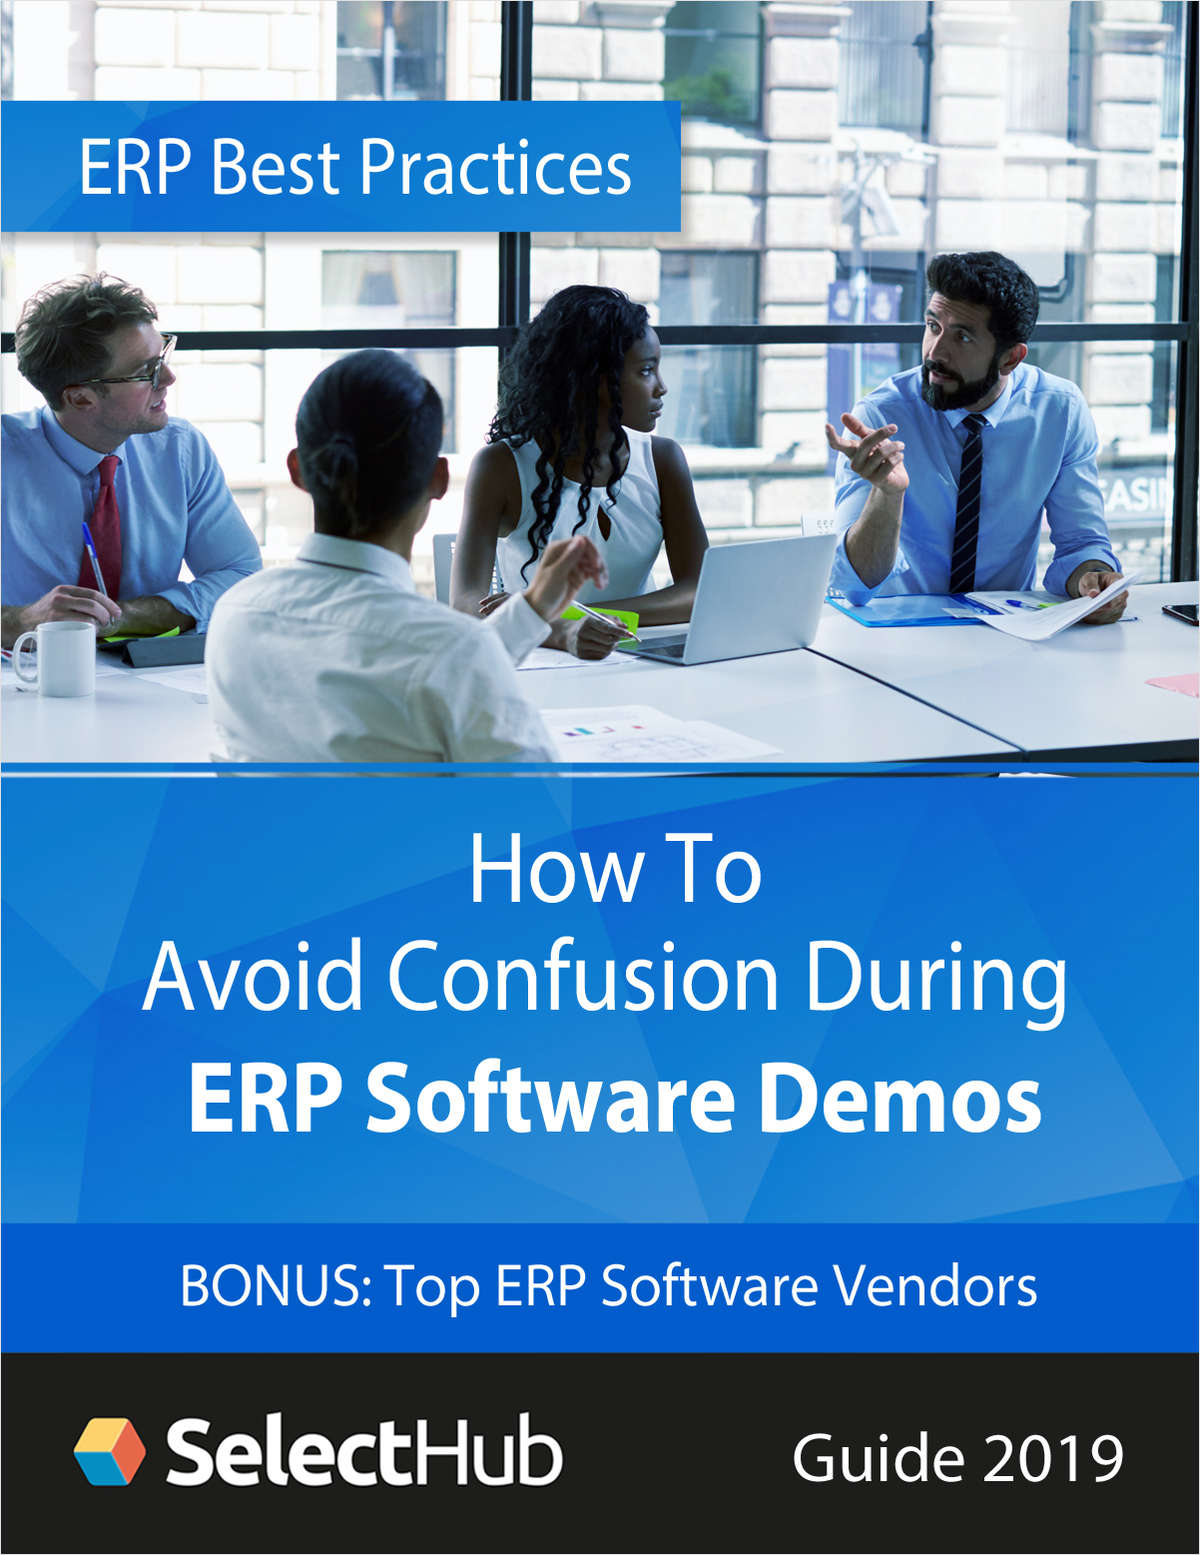 How to Avoid Confusion During ERP Demos